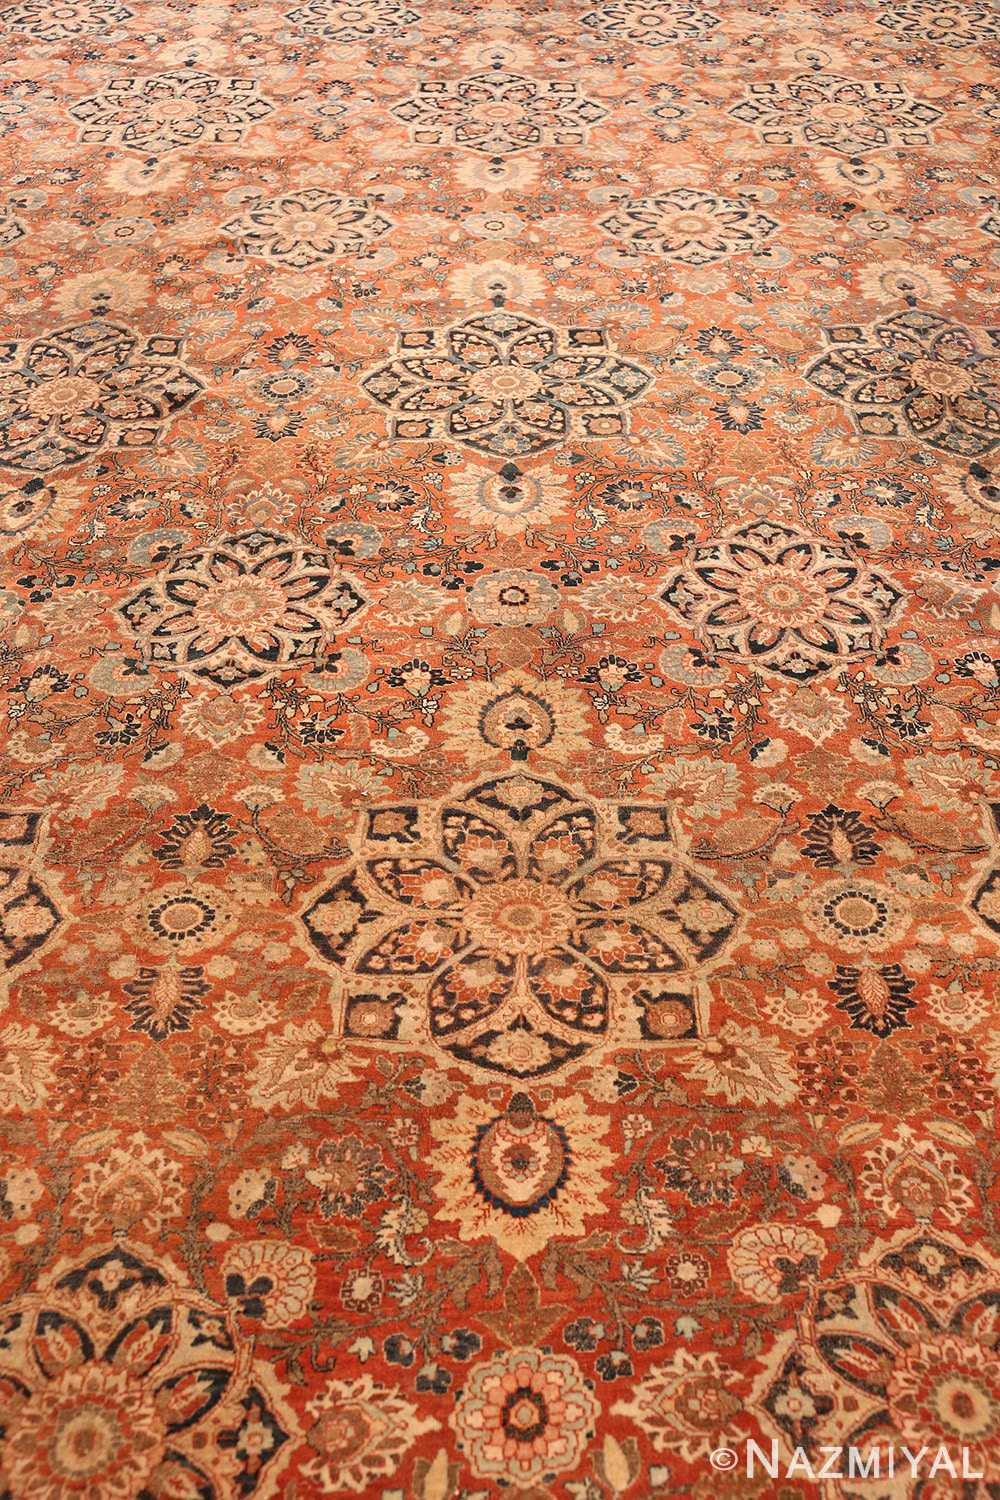 Field antique Persian Tabriz rug 50657 by Nazmiyal